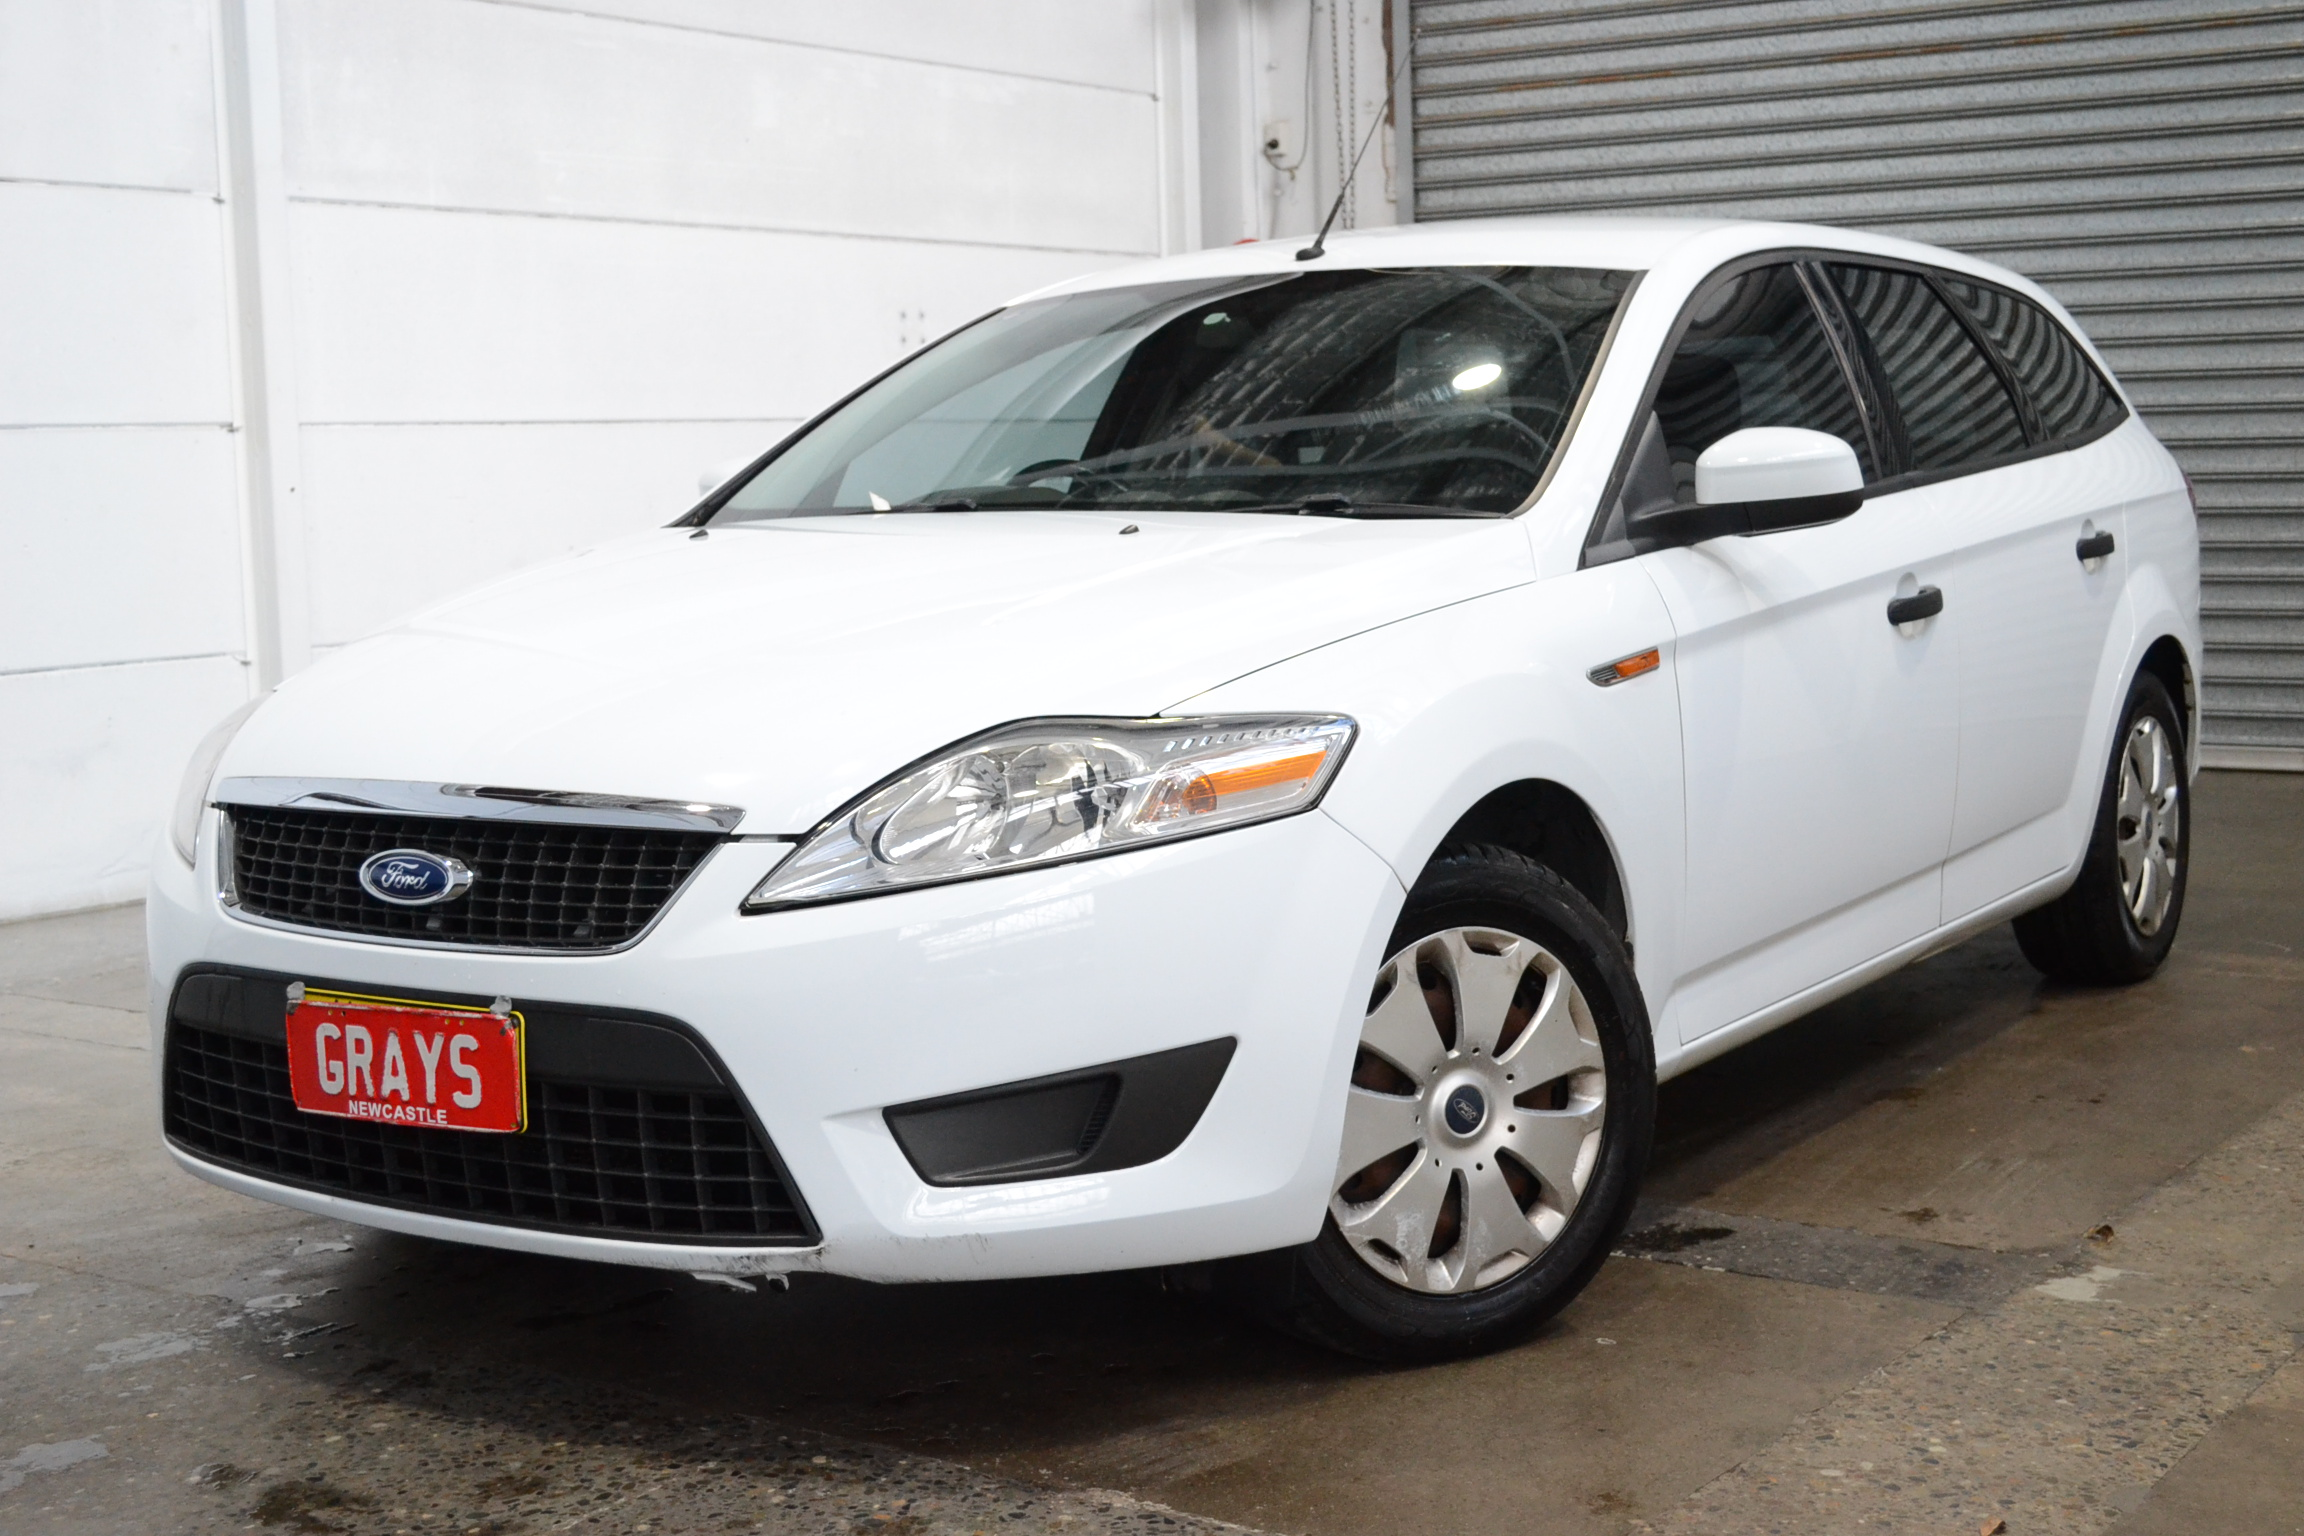 2009 Ford Mondeo LX MB Automatic Wagon